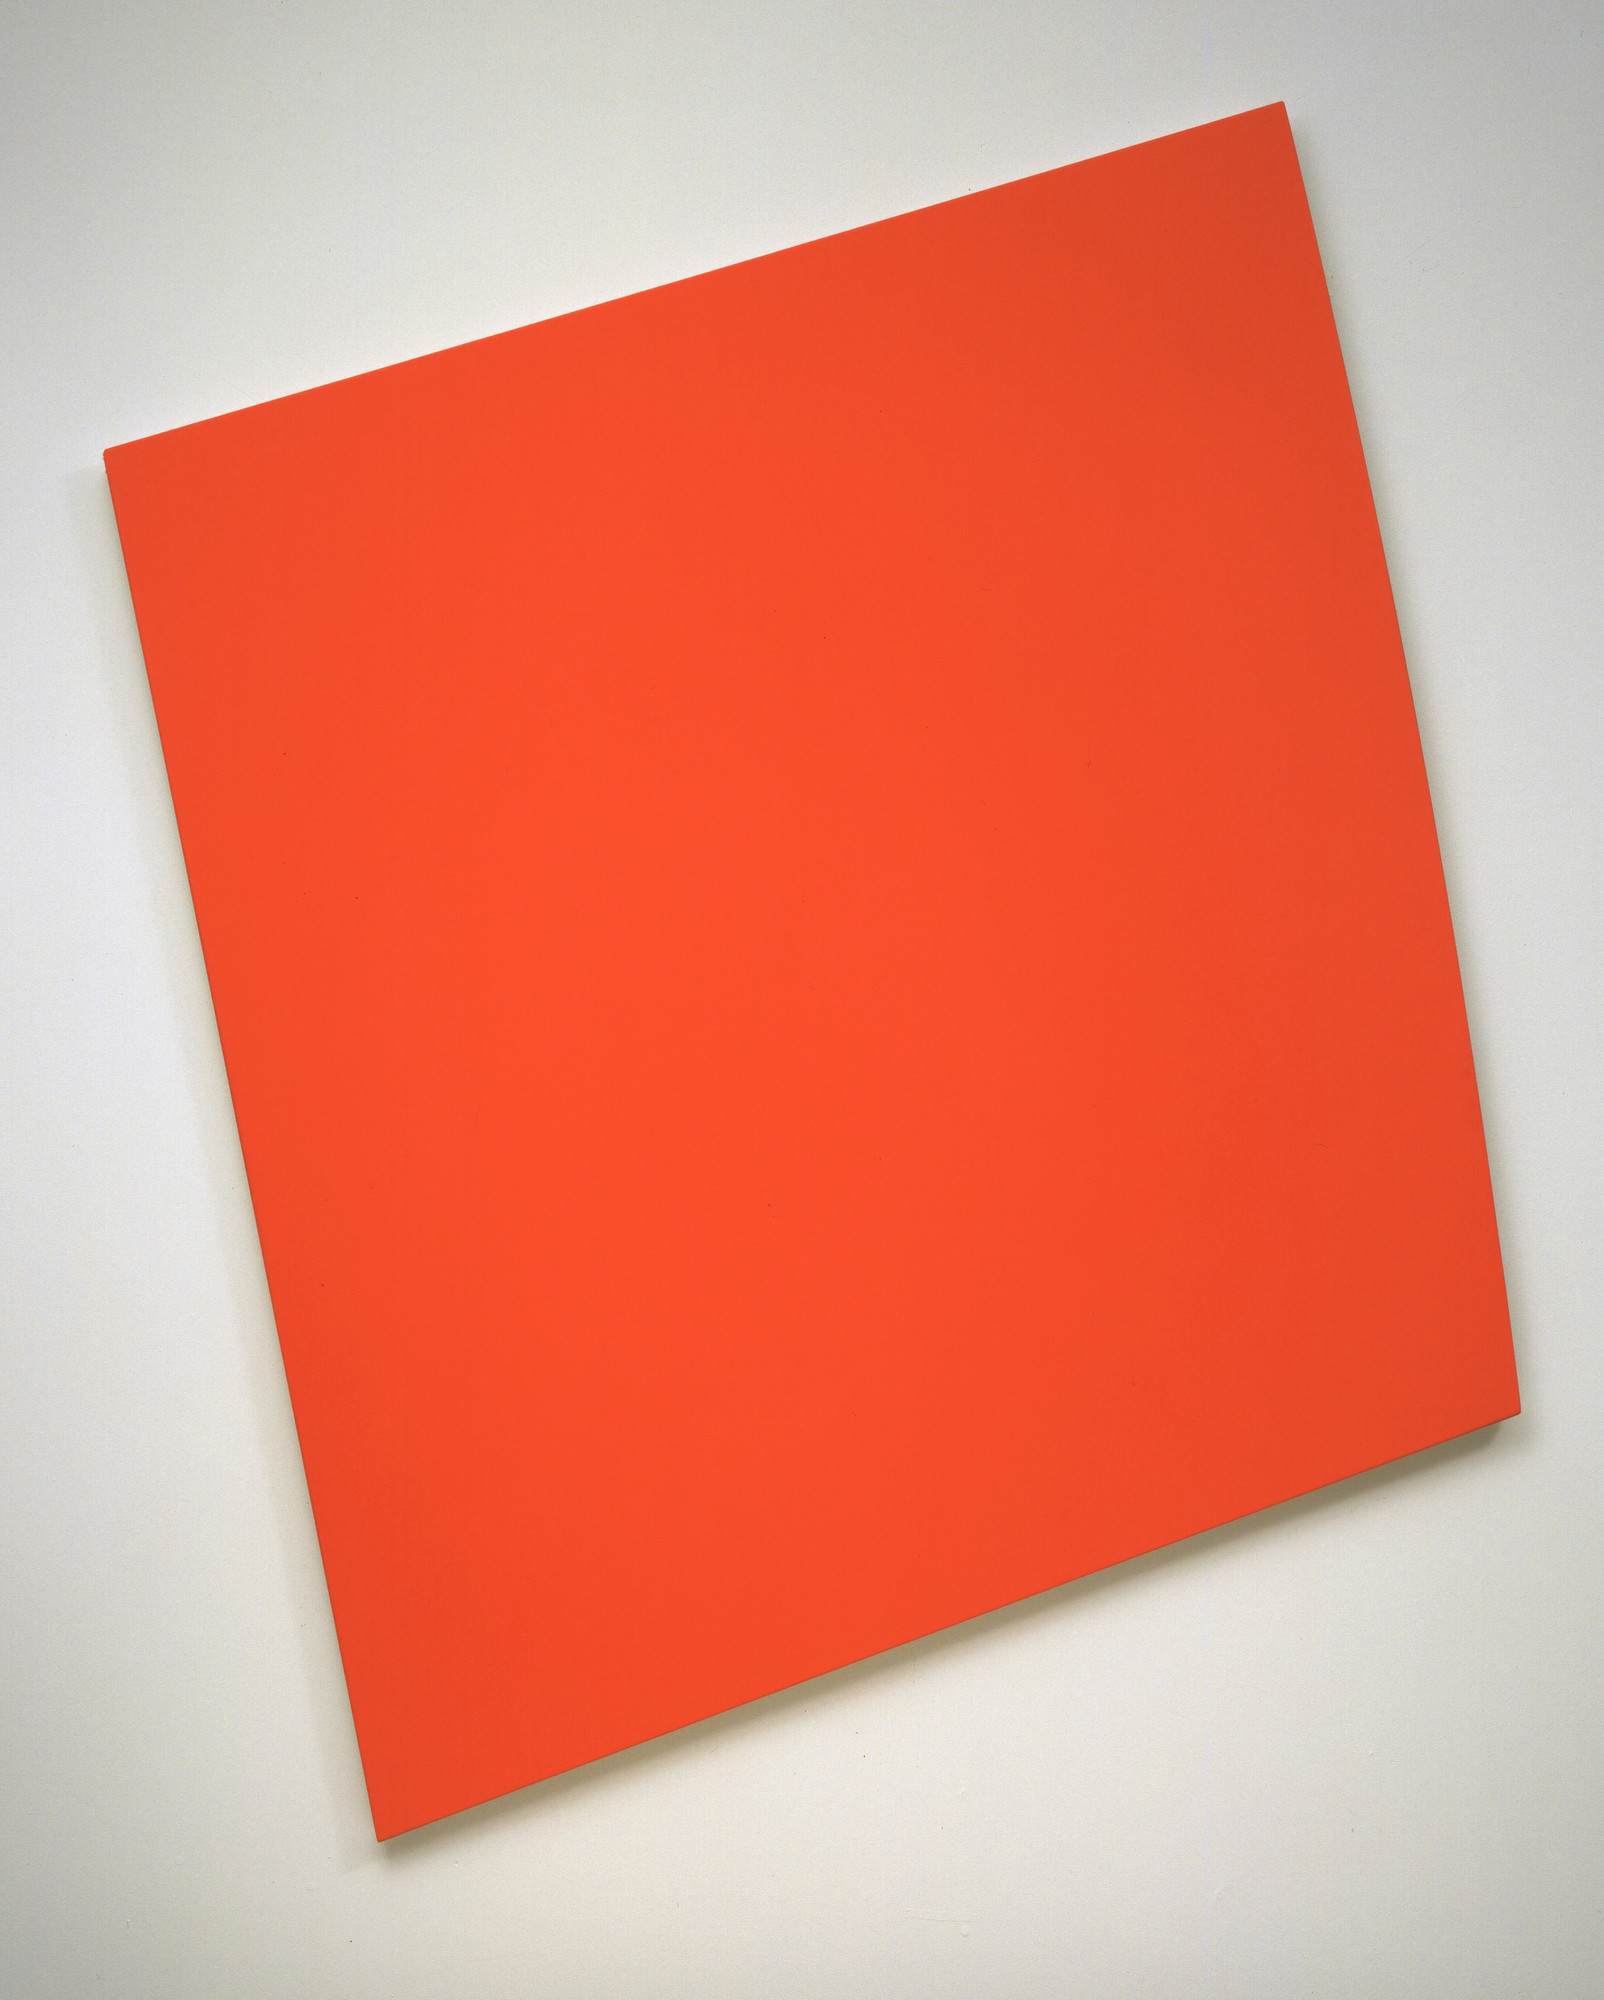 Ellsworth Kelly. Red-Orange Panel with Curve. 1993